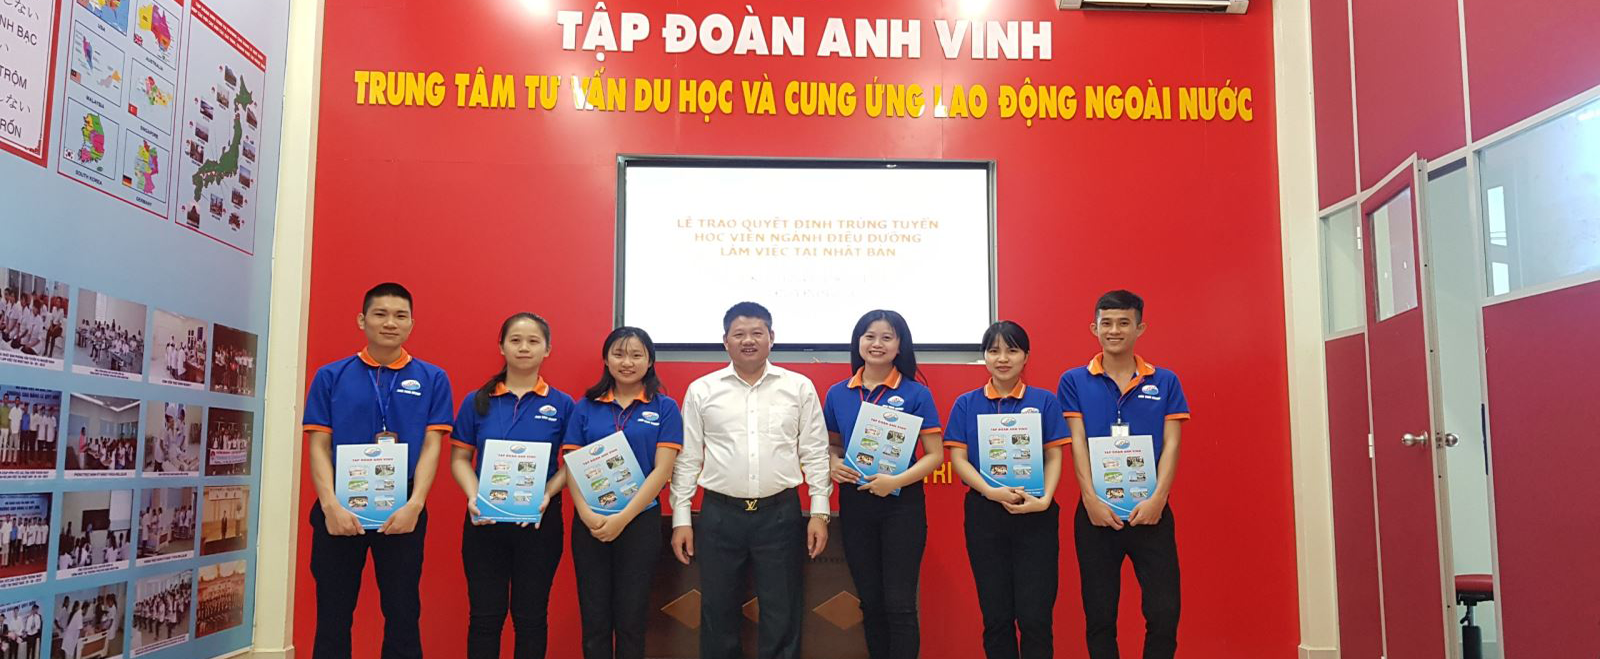 Anh Vinh Group